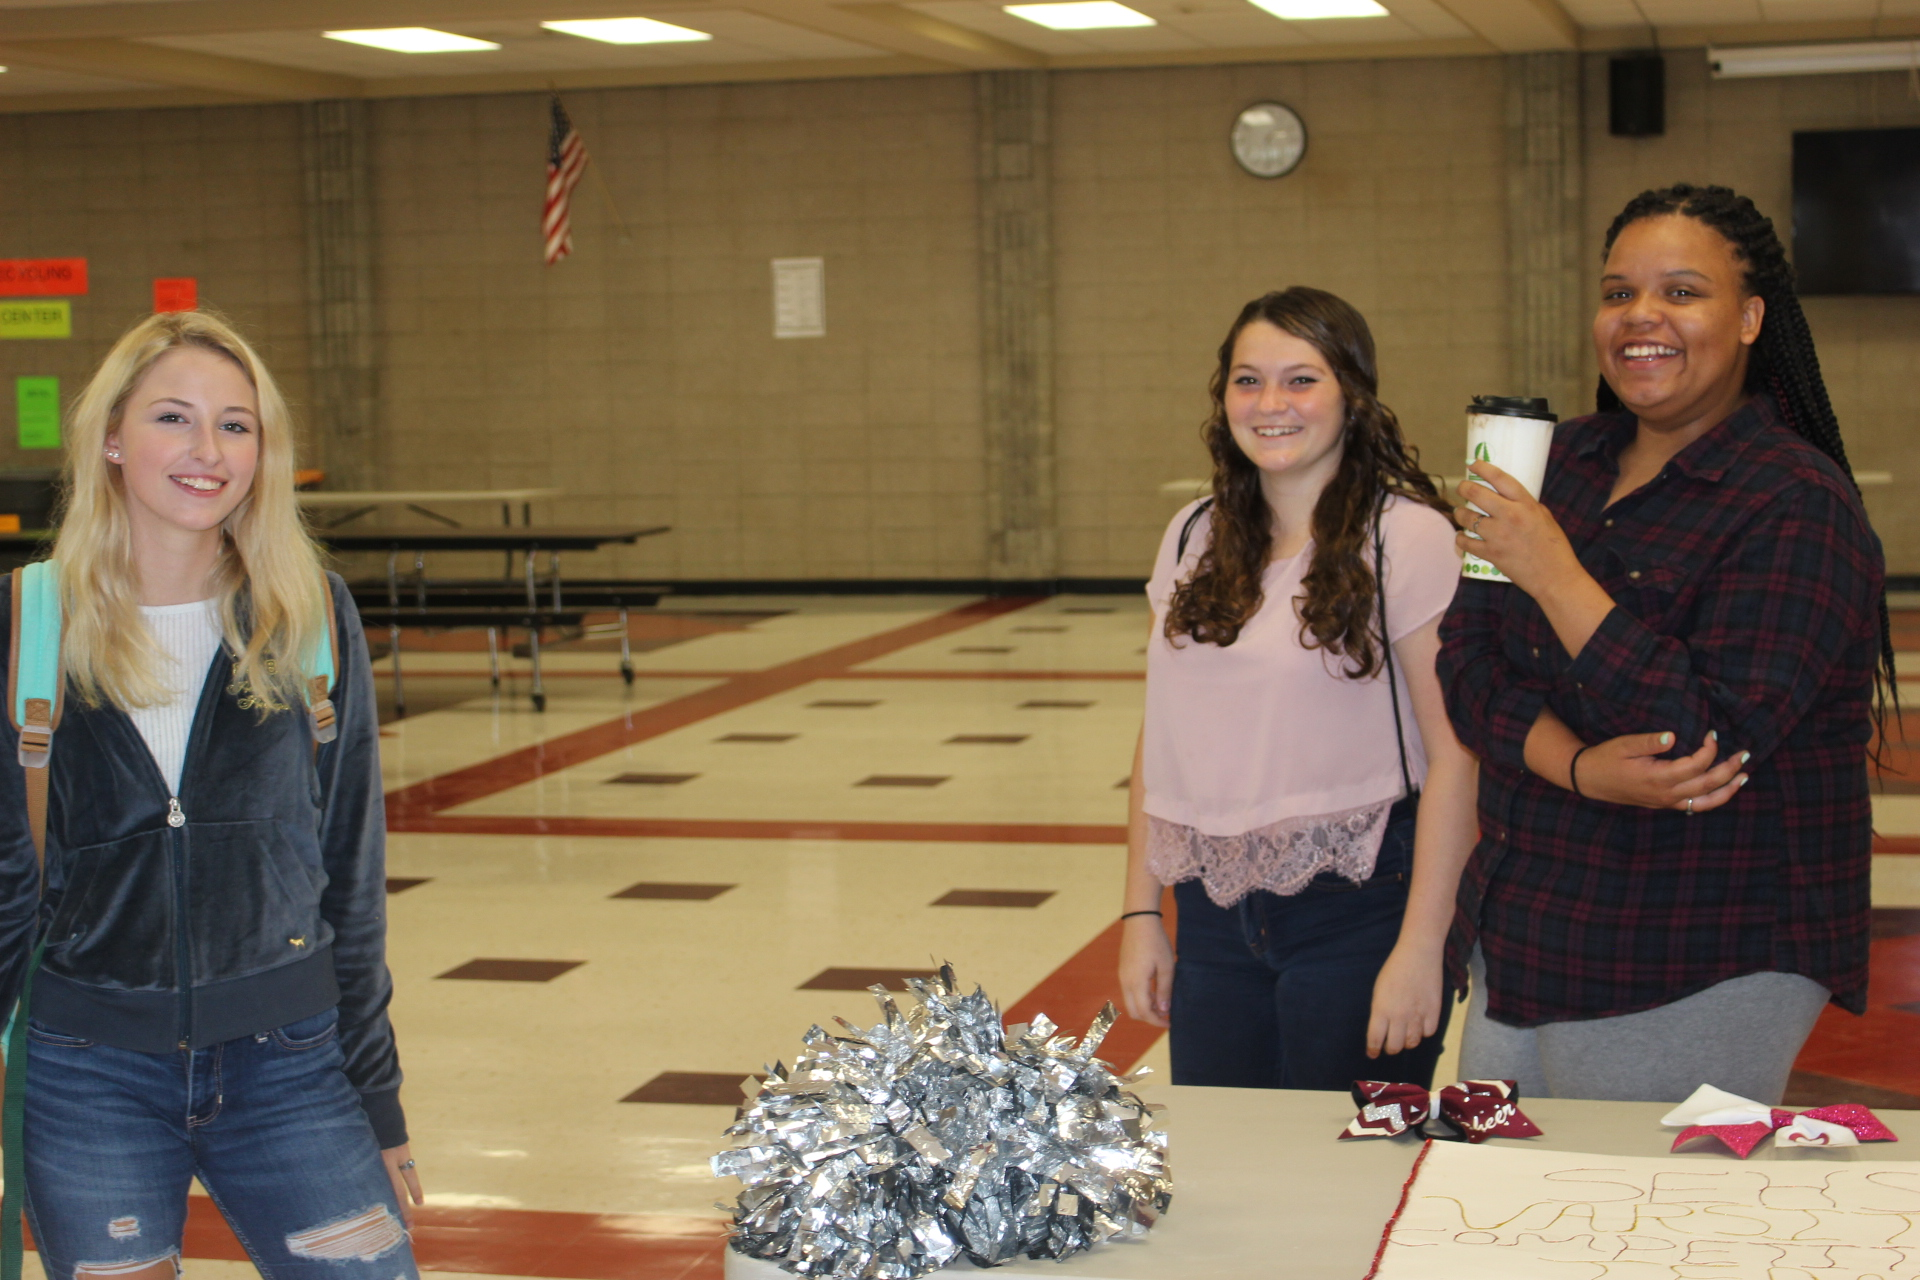 Students set up tables to advertise clubs and activities